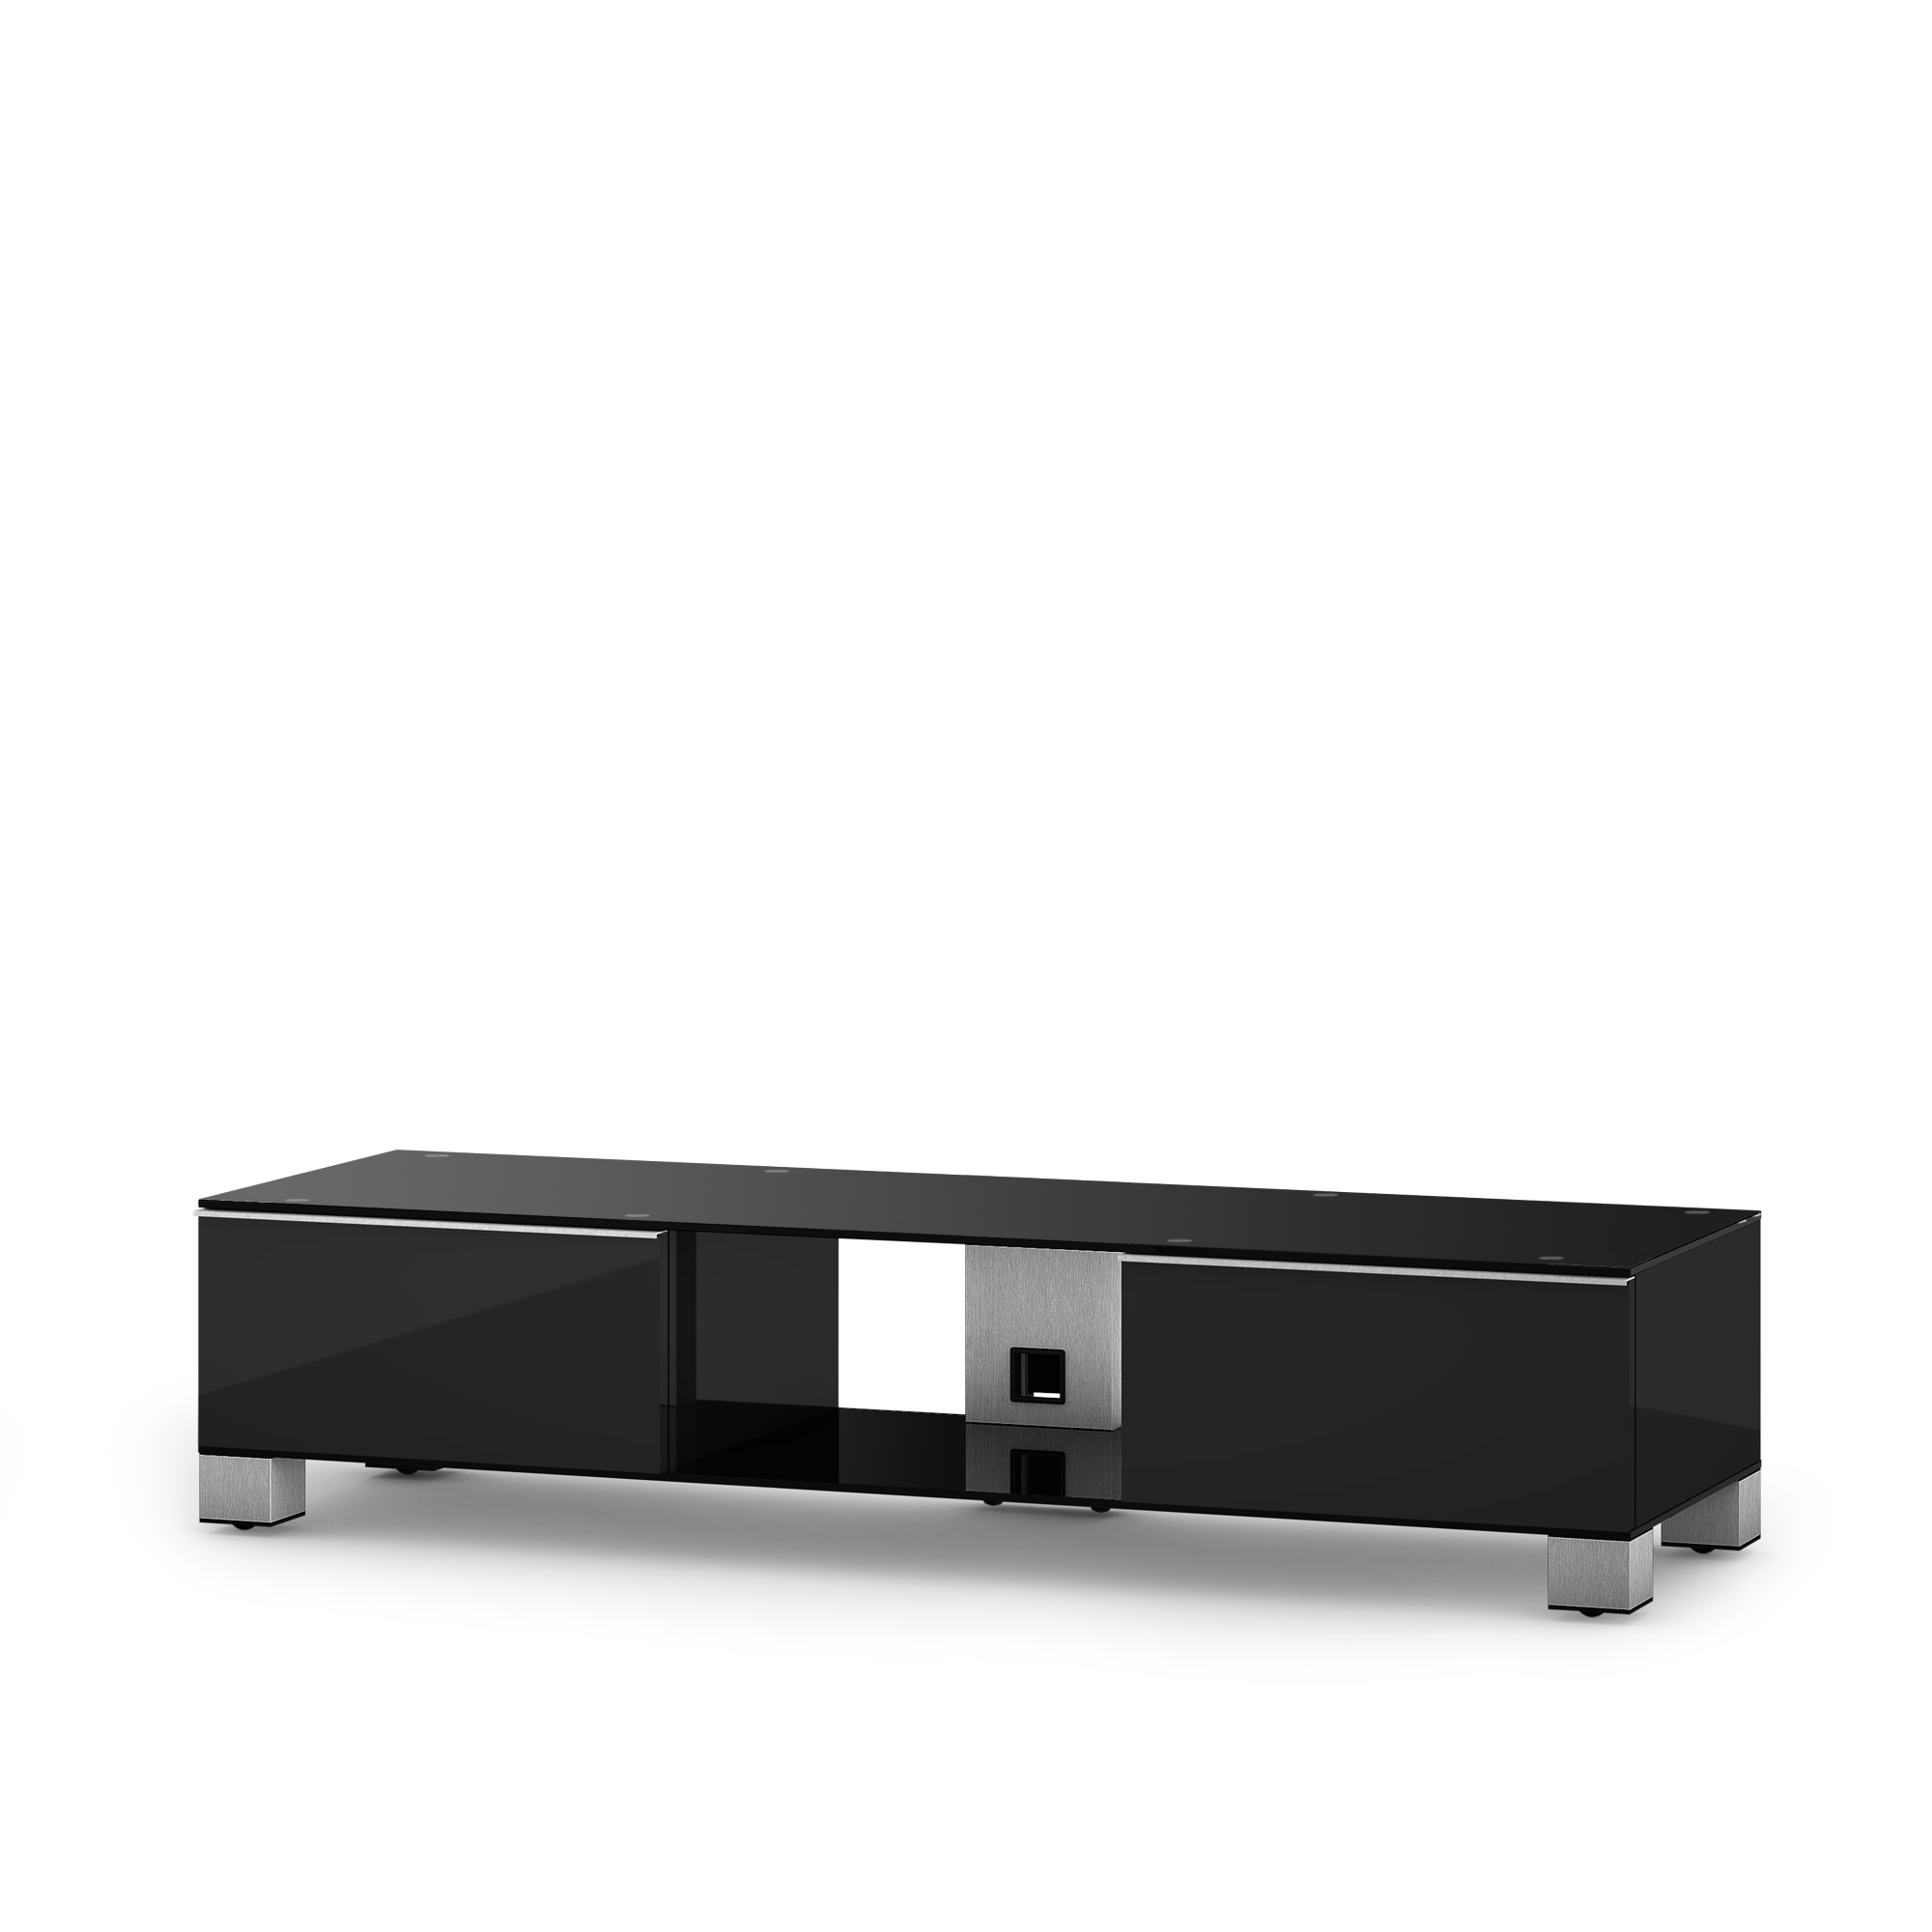 sonorous mood md9145 b inx blk tv m bel schweiz online shop wandhalterung fernsehm bel tv standfuss. Black Bedroom Furniture Sets. Home Design Ideas